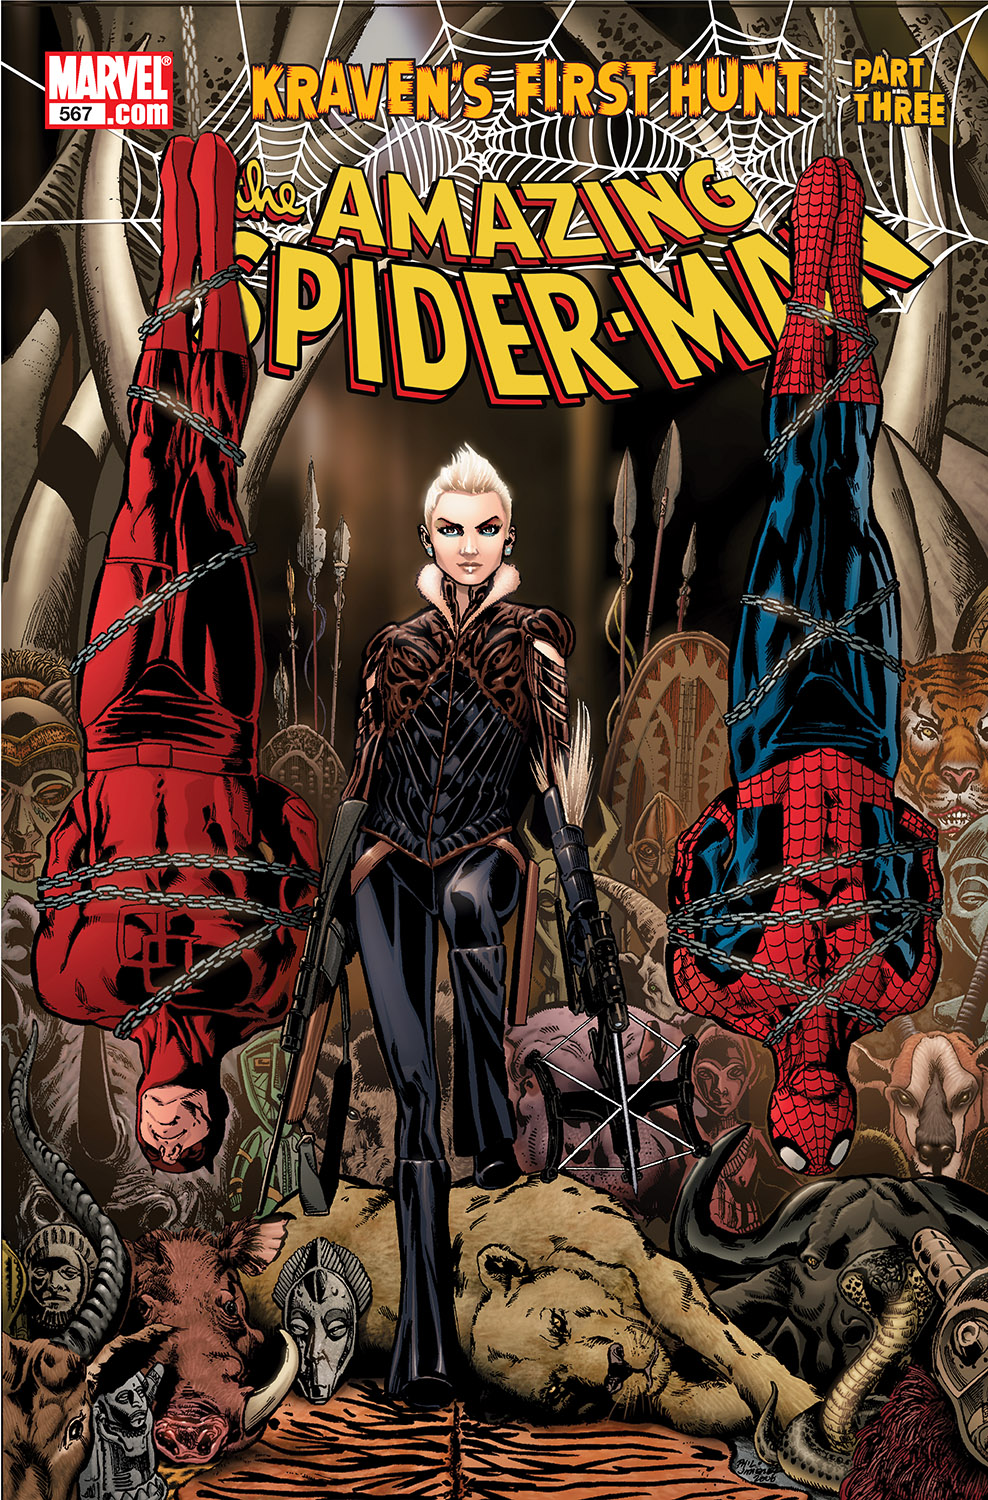 Amazing Spider-Man (1999) #567